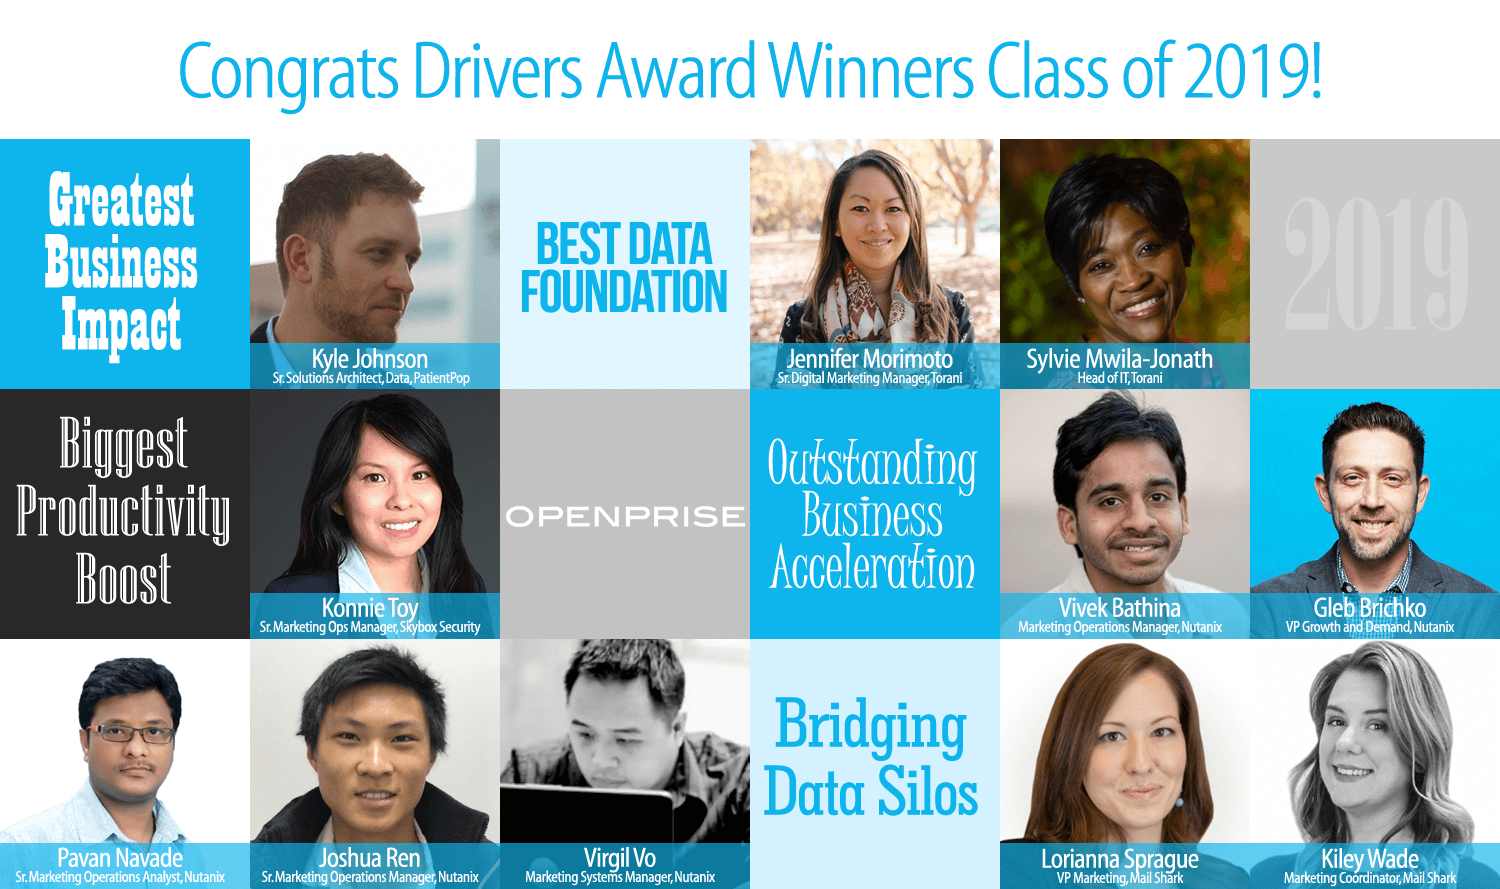 Learn more about this year's Openprise Data-Driven Marketer of the Year Award Winners!